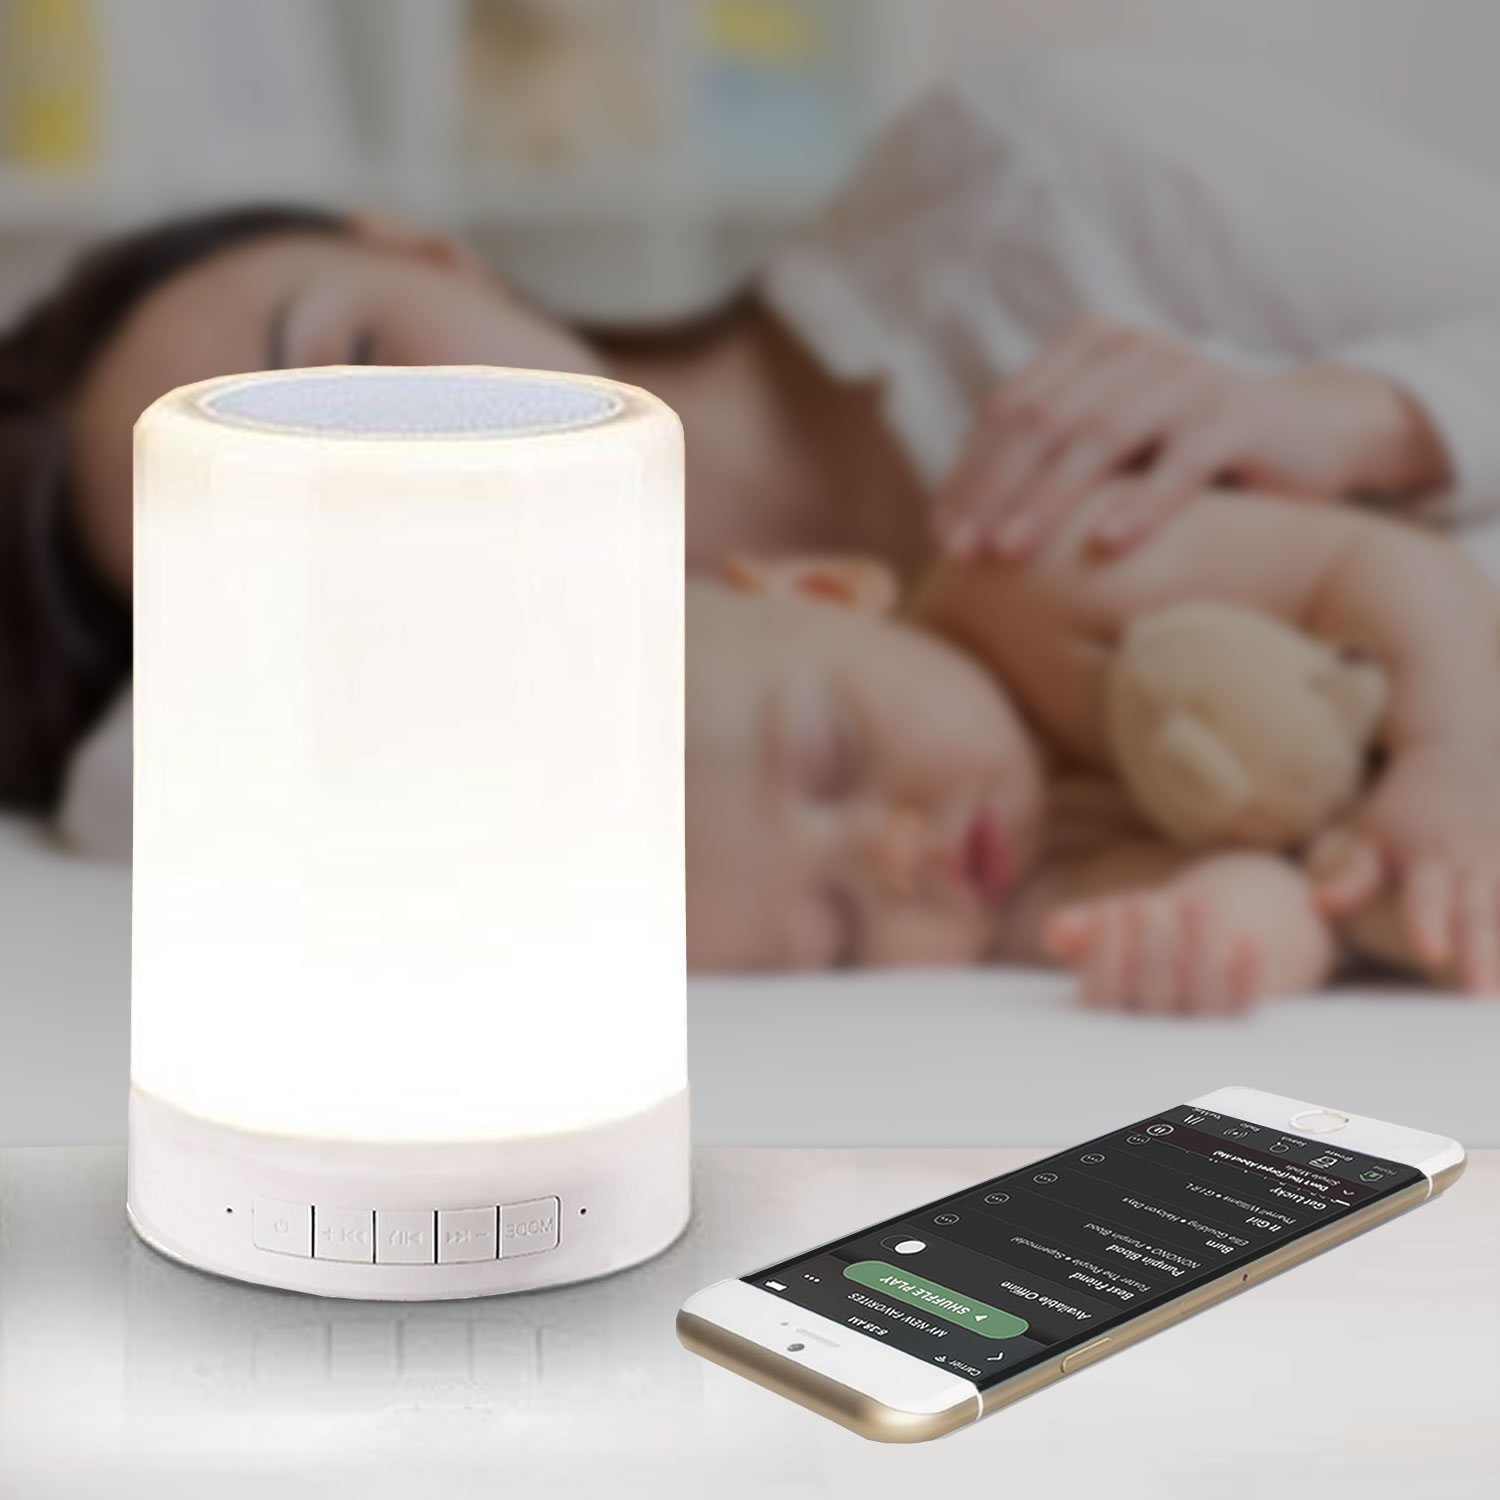 LED Night Light for Kids with Speaker and Touch Control by InSassy - Bedside Baby Nursery Bluetooth Lamp with Speakerphone - Adjustable Warm White Brightness with 7 Solid and Random Mood Colors